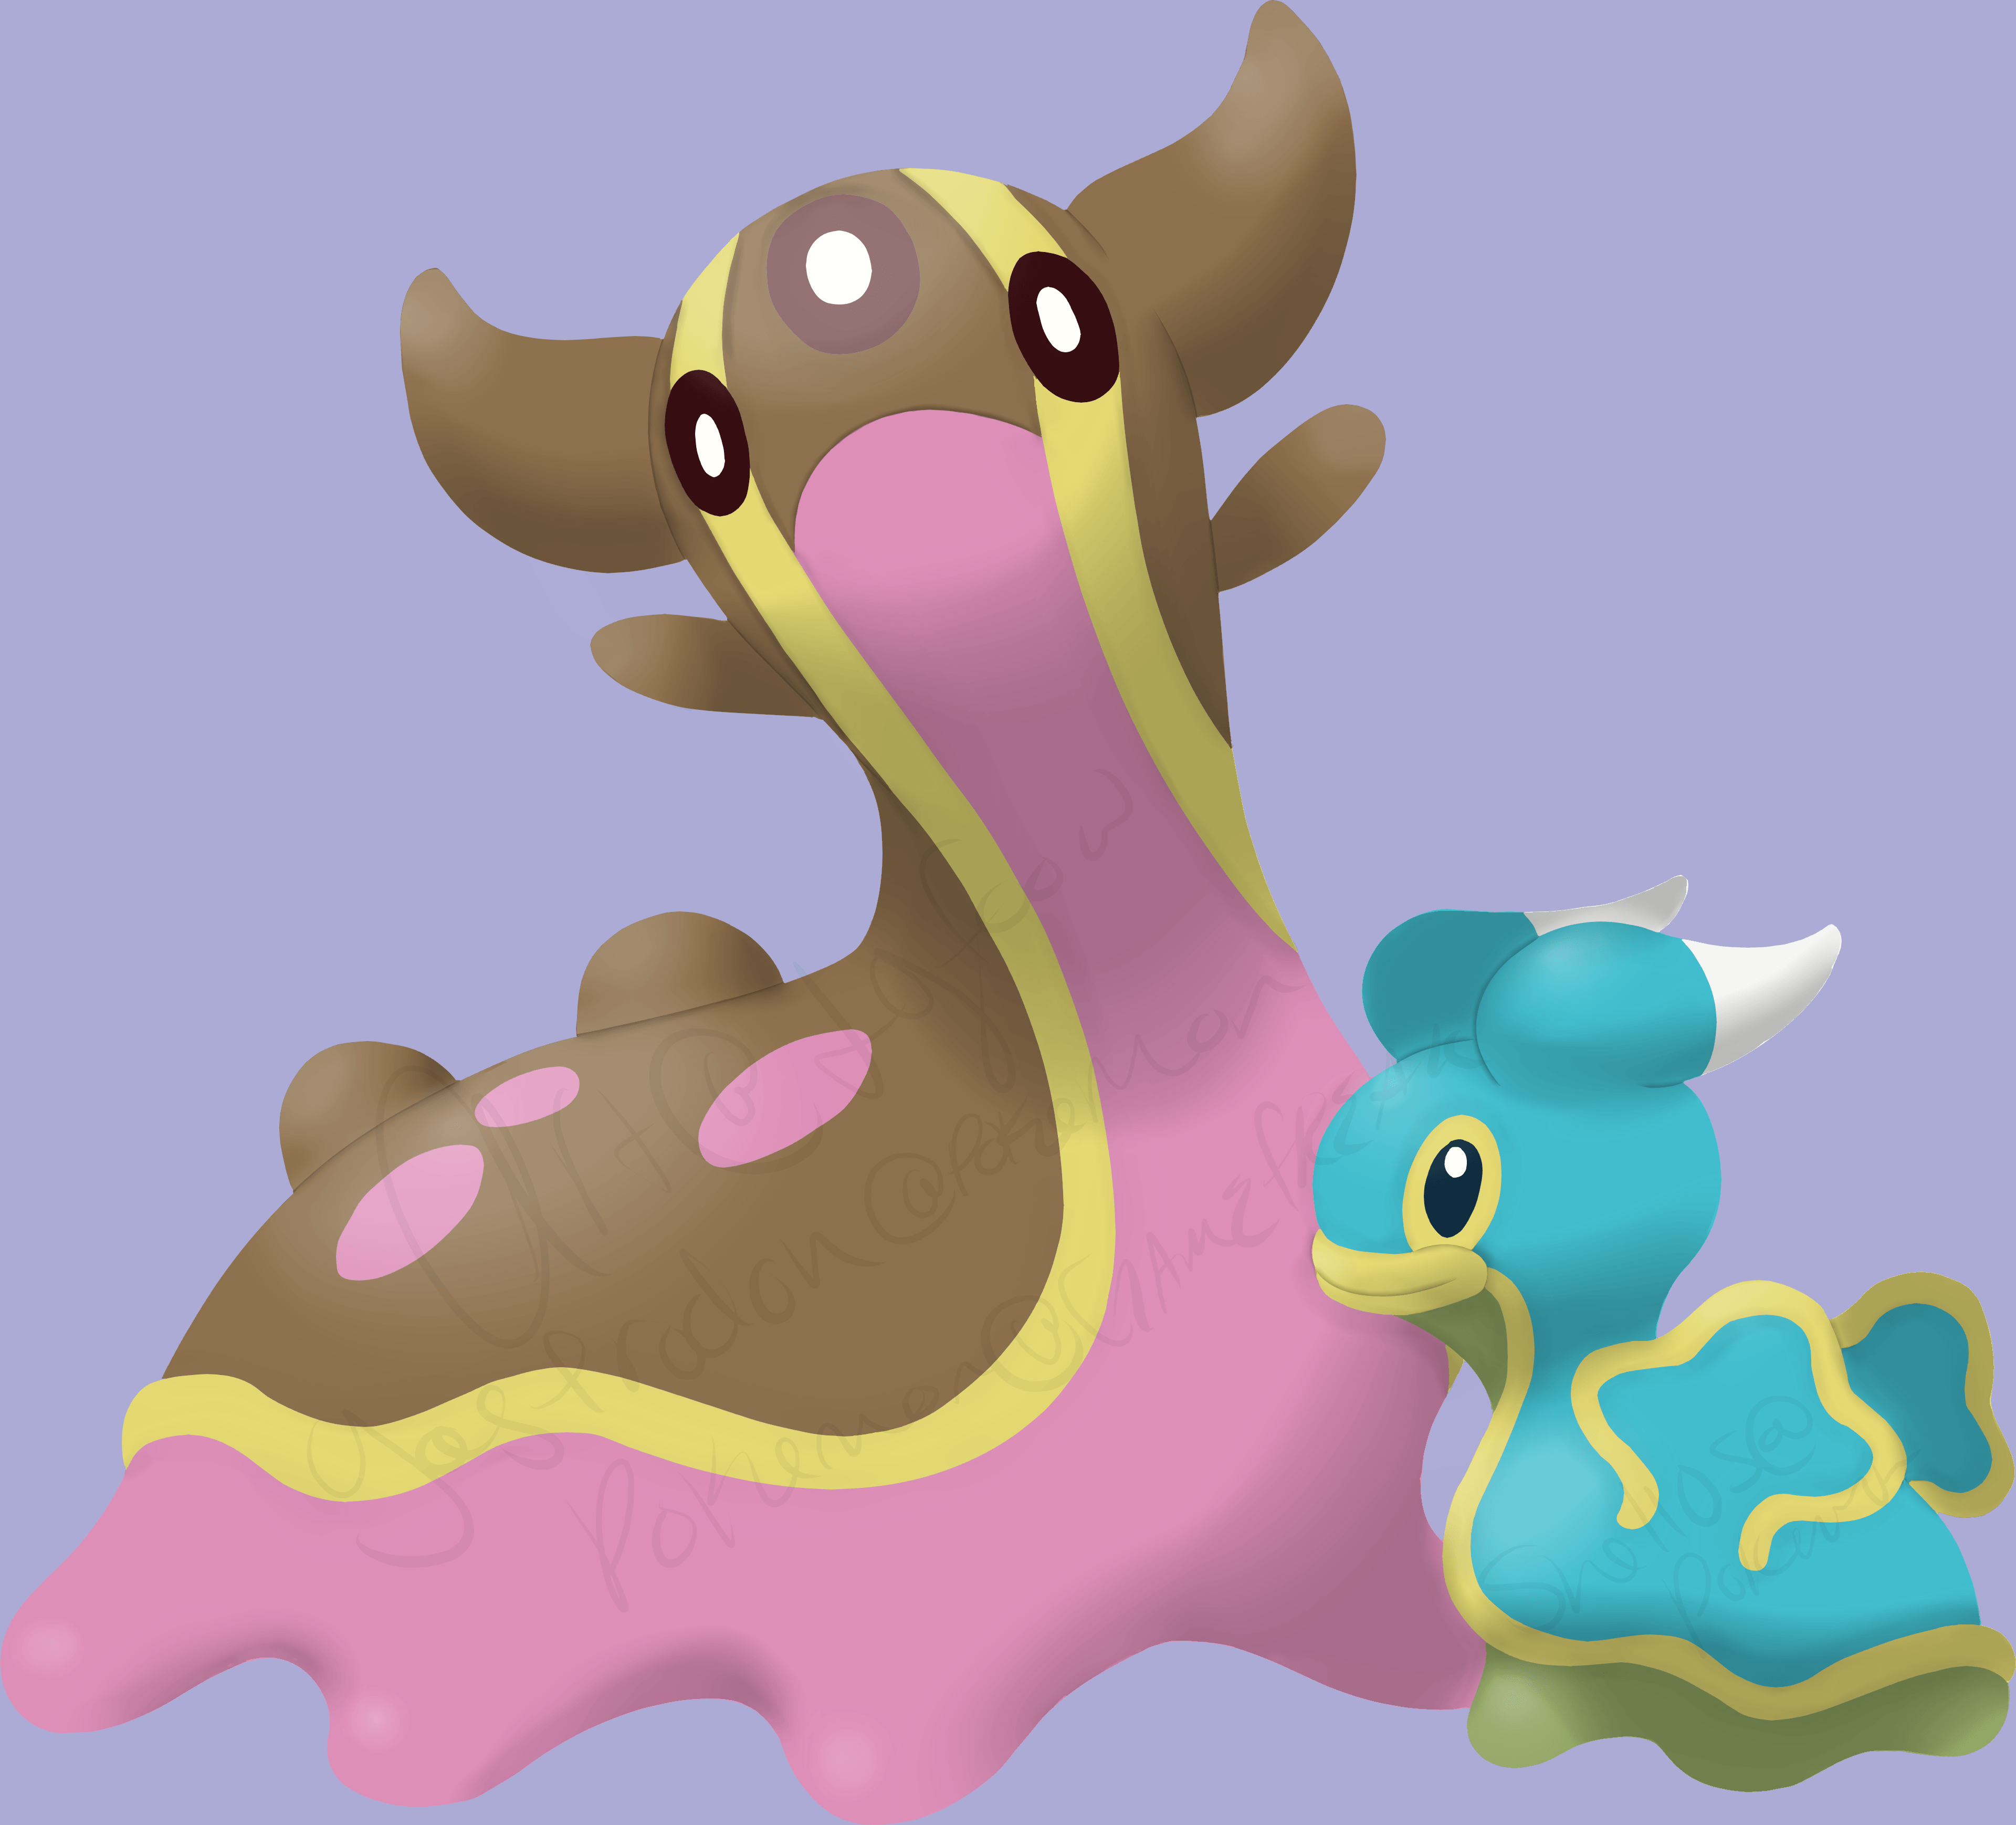 OC) Gastrodon/Shellos in Ken Sugimori's style mixed with my own ...